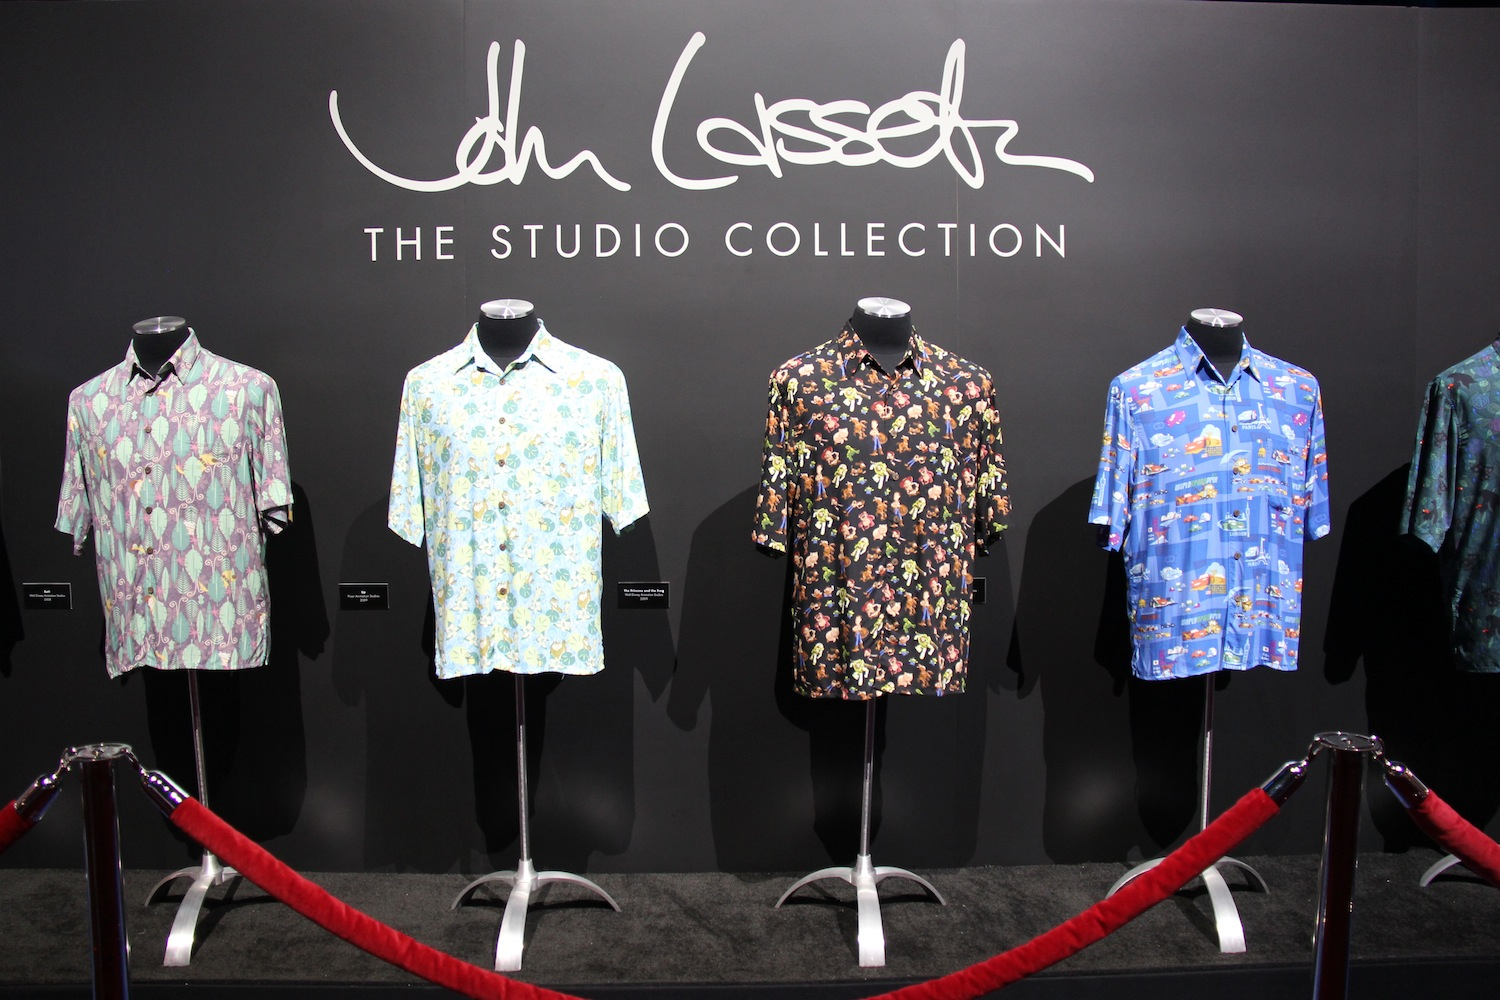 John Lasseter s Hawaiian Shirt Collection  As Awesome As It Sounds 92cde5a8f